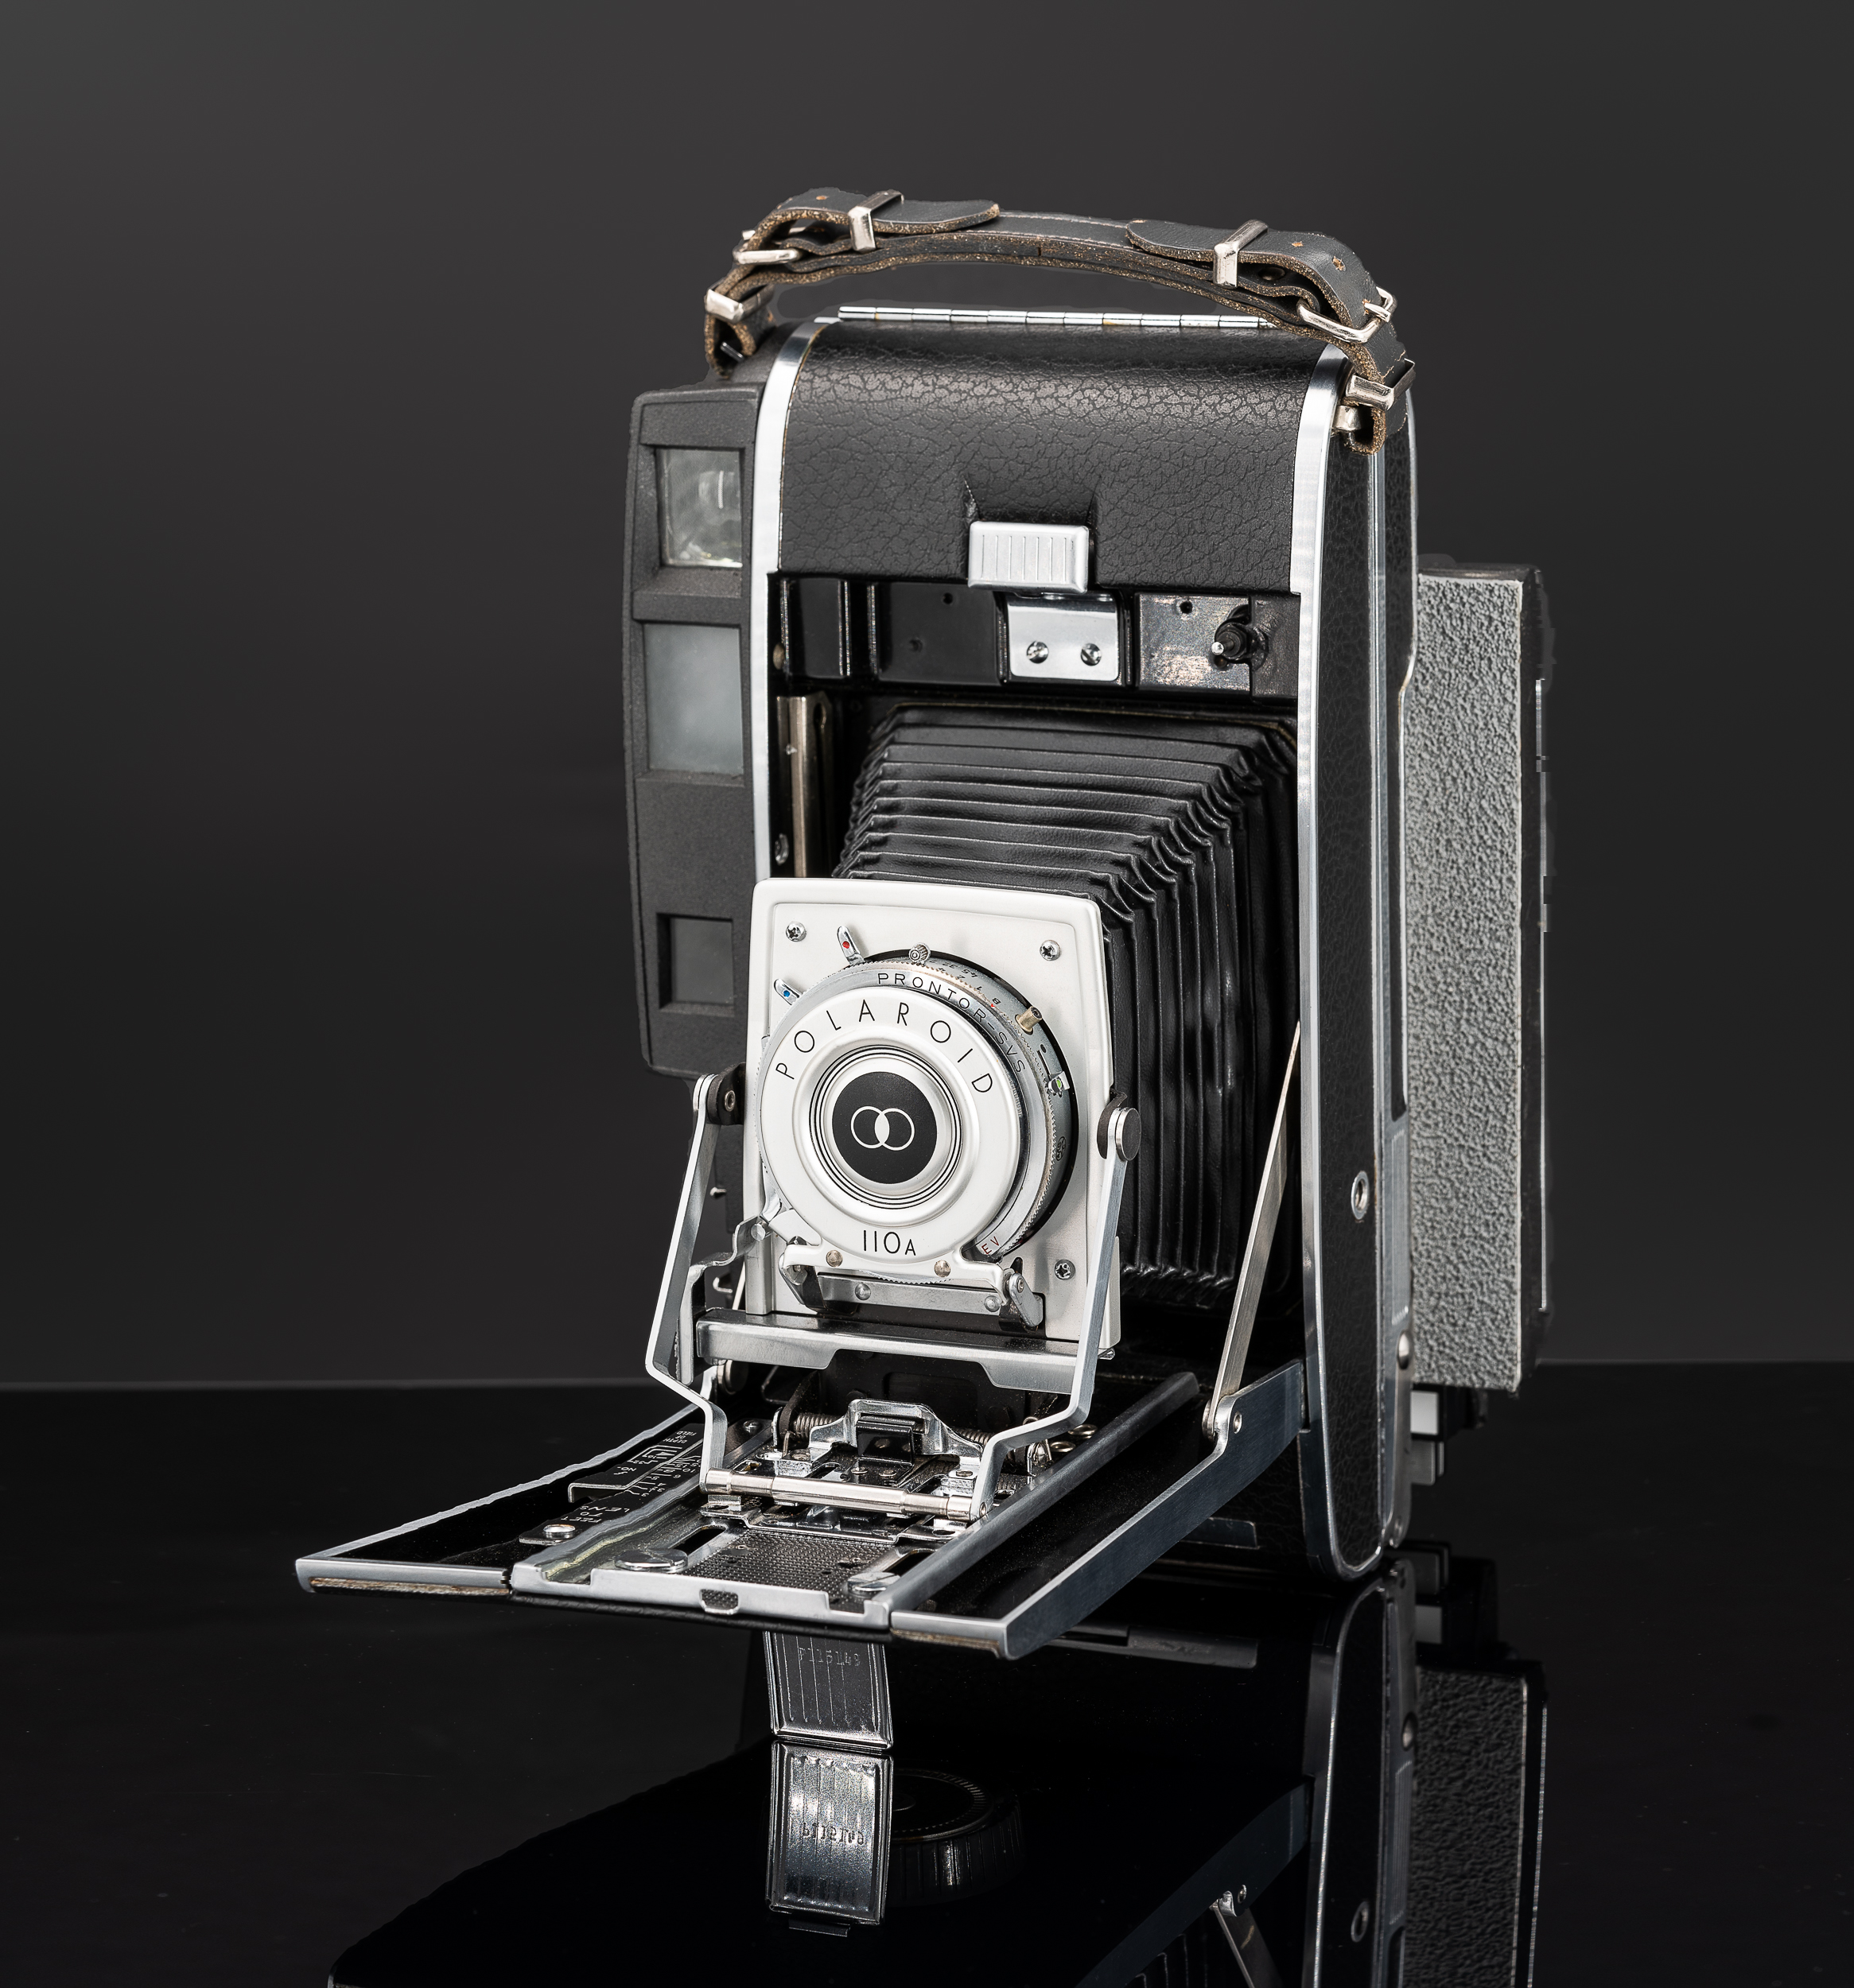 Polaroid 110A converted to 4x5